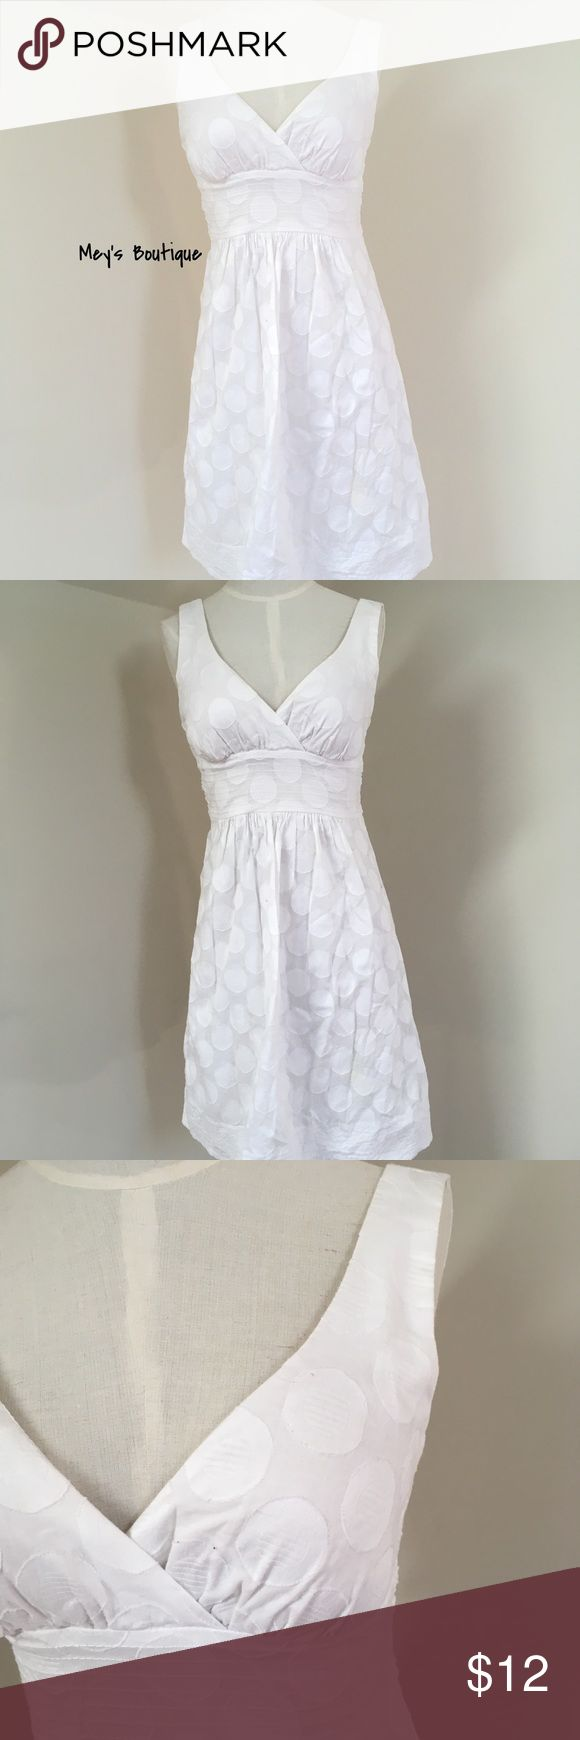 ⭐️B.Smart White Elegant Midi Dress Size 6⭐️ ⭐️B.Smart White Elegant Midi Dress Size 6⭐️ Minor signs of usage but overall in good condition! Perfect for a wedding. Next day shipping. Ties in the back. All sales are final. b.smart Dresses Midi